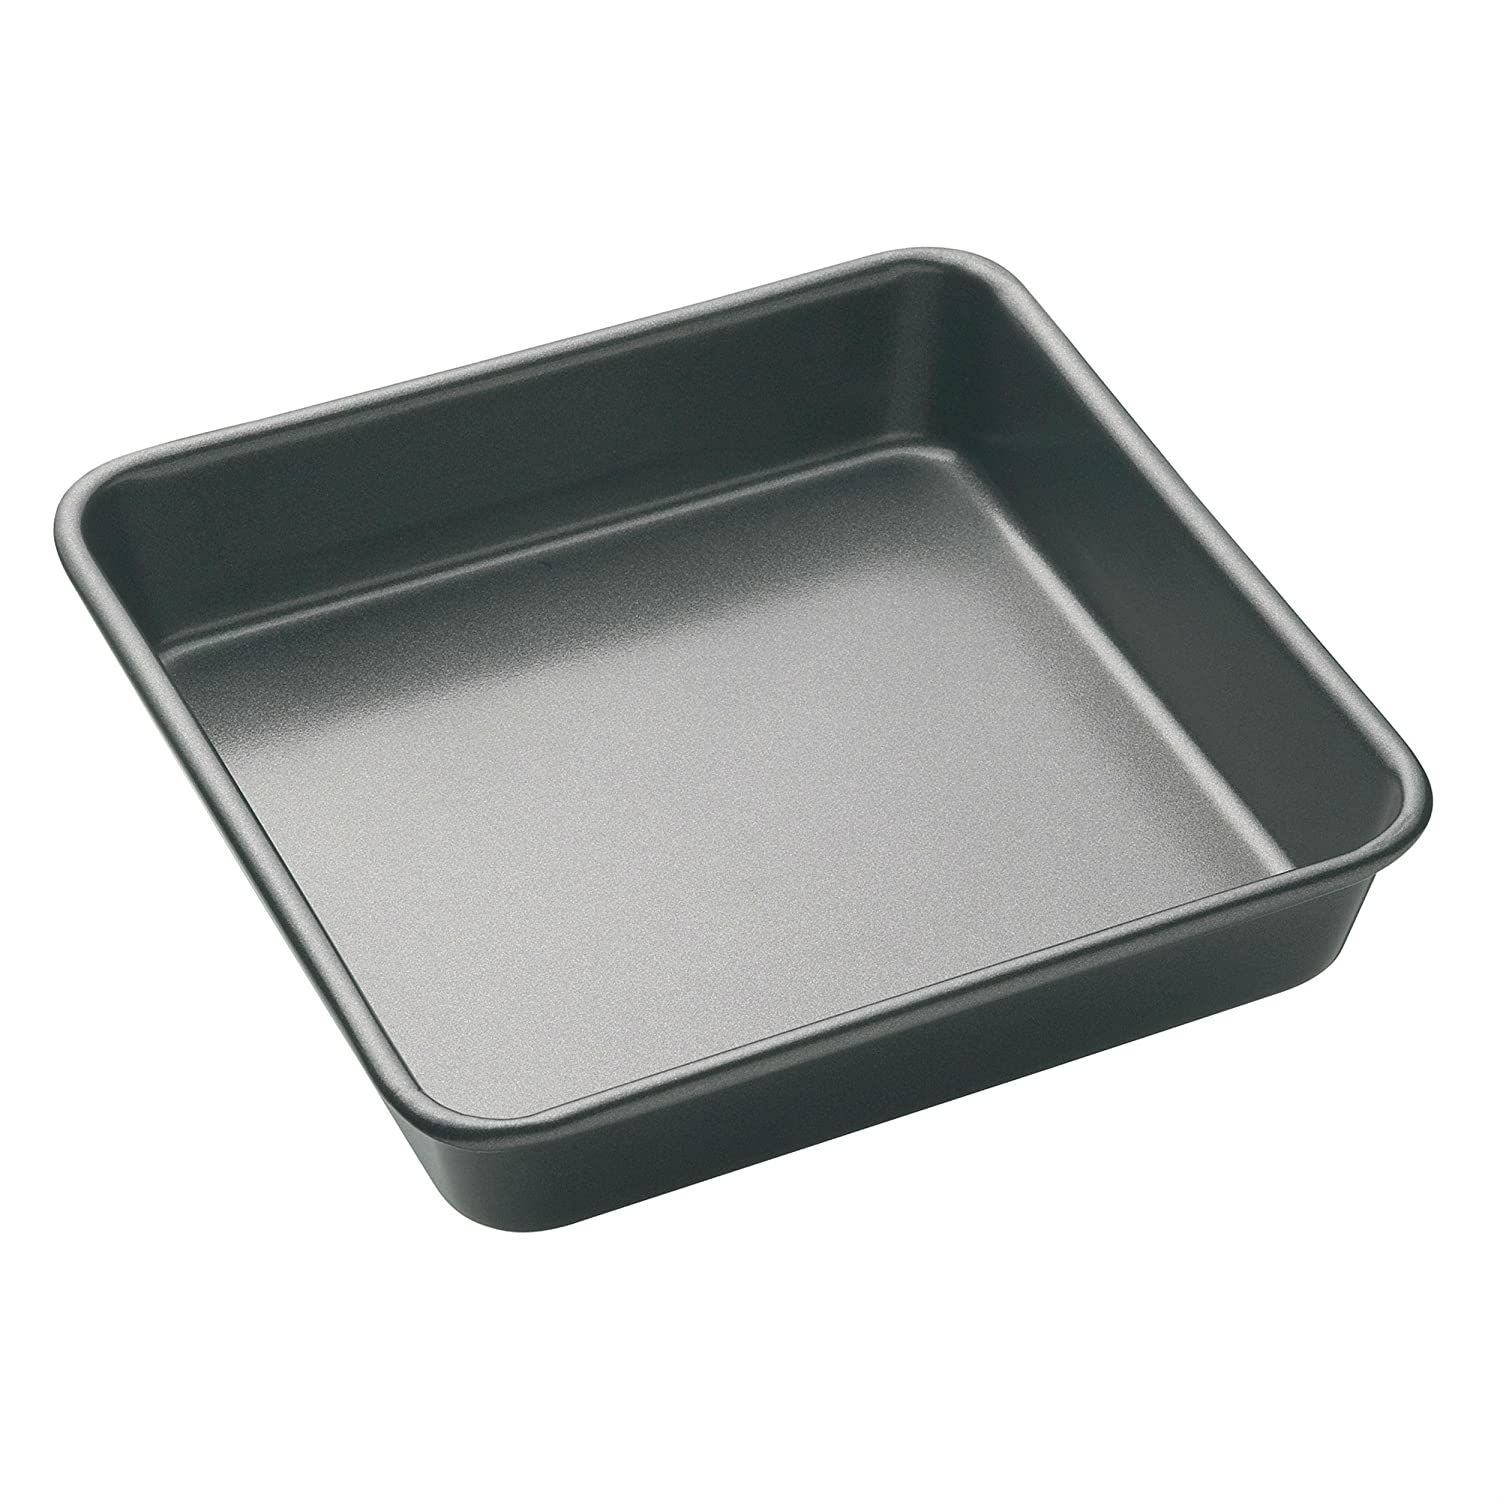 DEEP SQUARE CAKE TIN - Teflon Long Lasting British Standards - Cooking Bake Baking Equipment Oven Dishwasher with Easy Safe Clean Off Technology - Size is 22 x 22 x 8 (cm - Approx) - By Guilty Gadgets